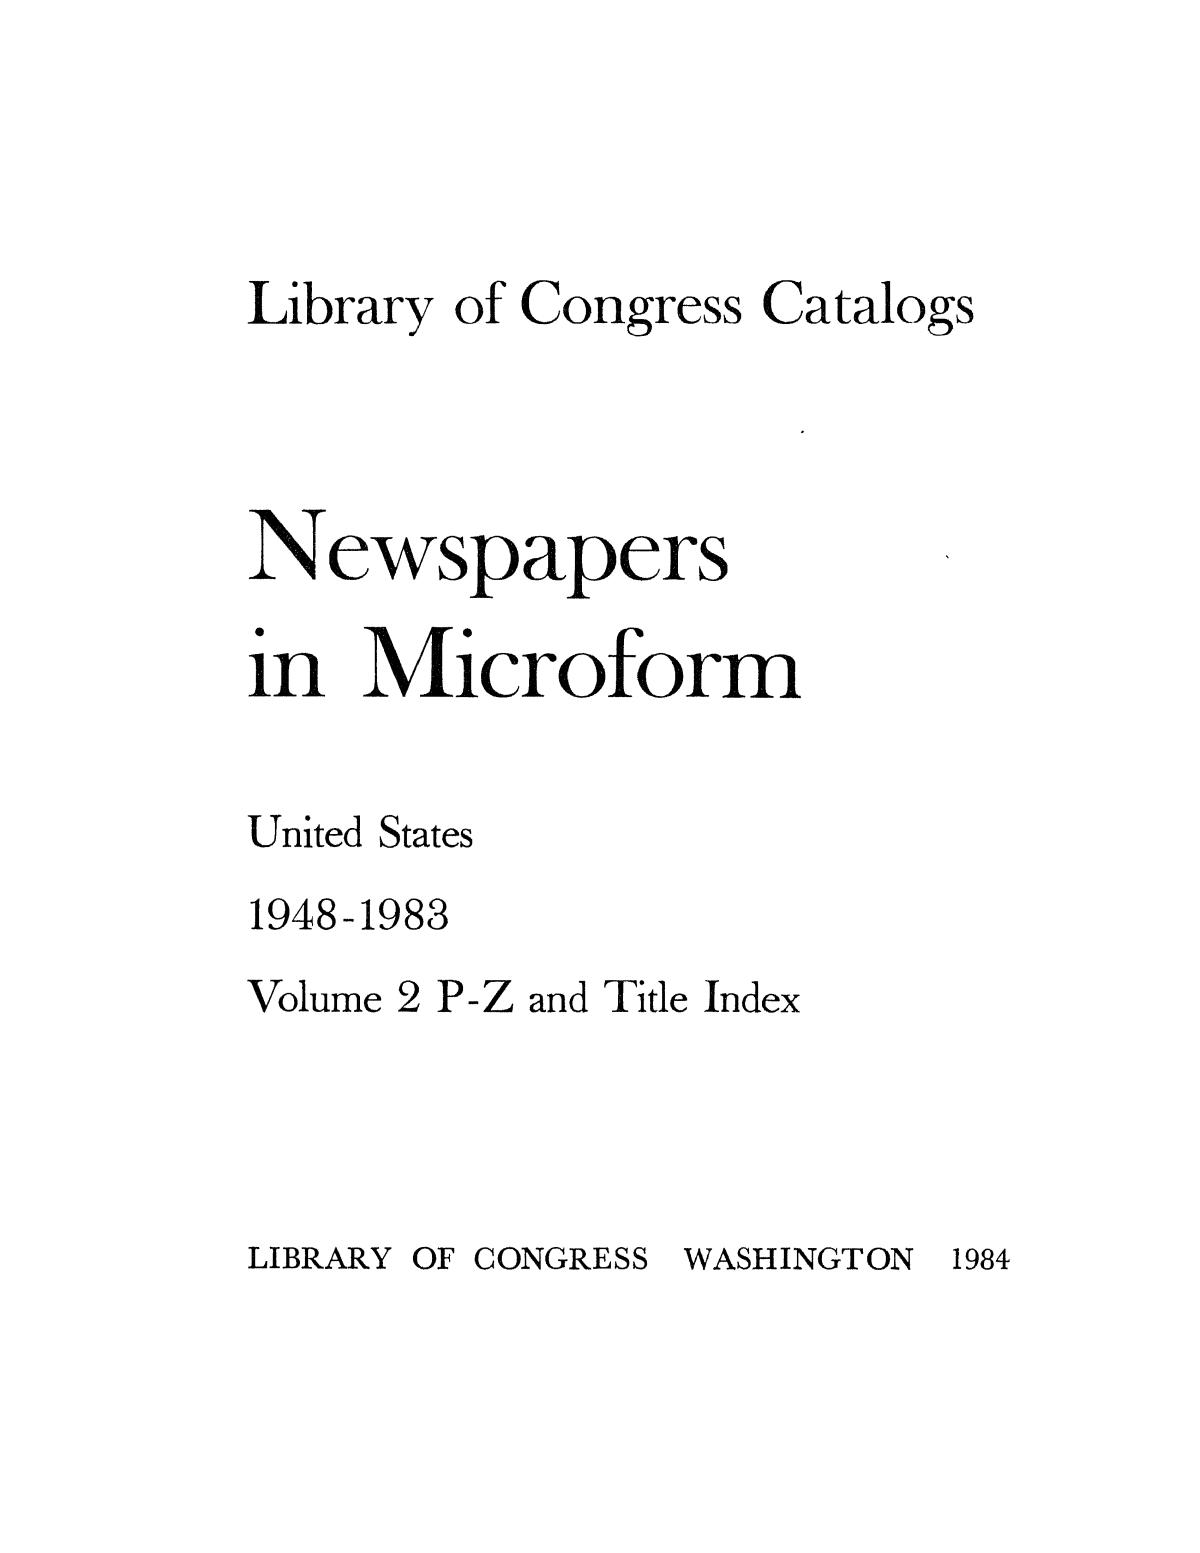 Library of Congress Catalogs: Newspapers in Microform, United States, 1948-1983, Volume 2 P-Z and Title Index                                                                                                      None